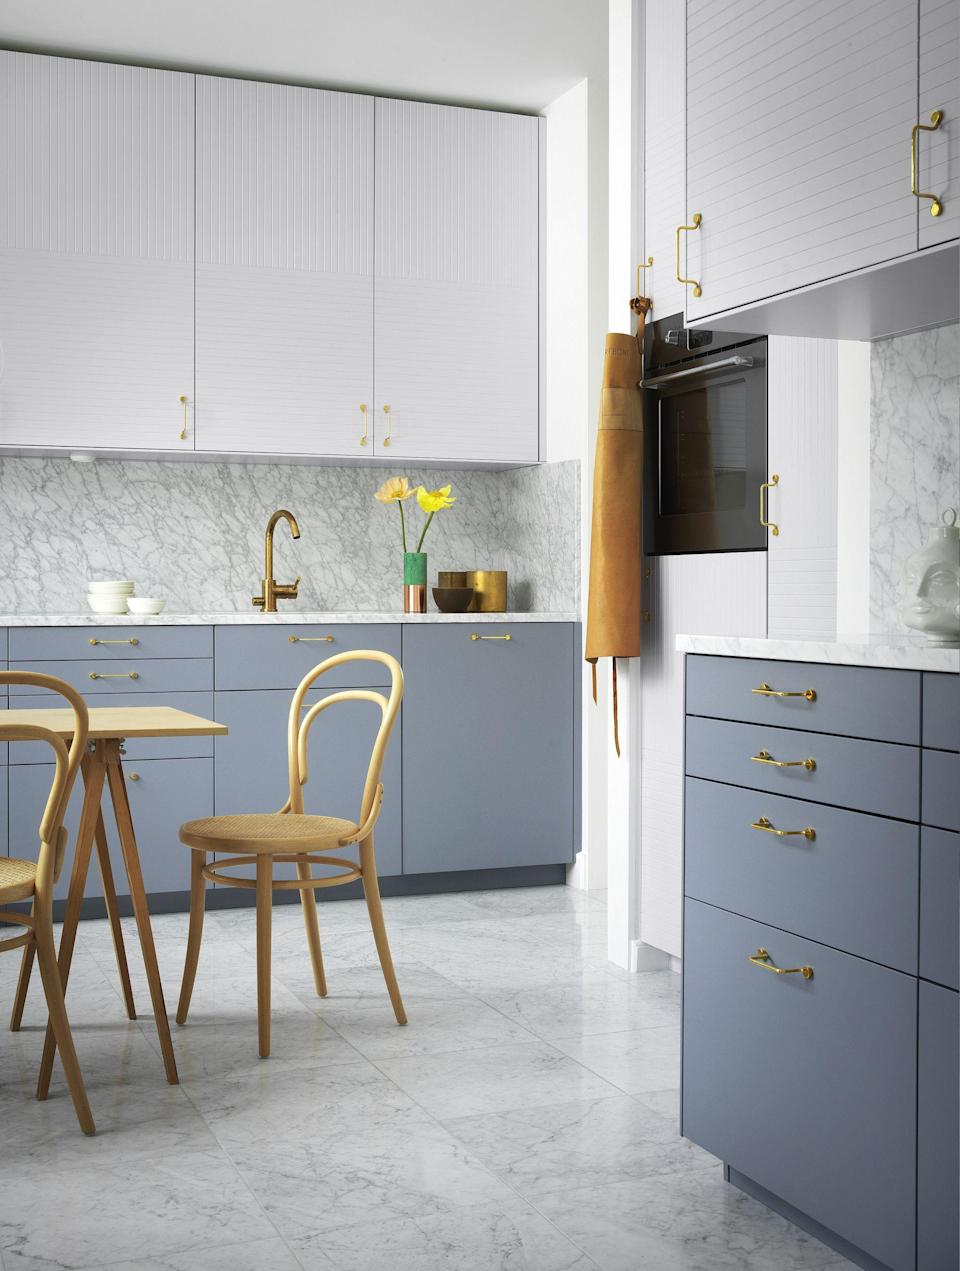 """<p><strong>Want to upgrade your <a href=""""https://www.housebeautiful.com/uk/decorate/kitchen/g423/best-kitchen-design-trends/"""" rel=""""nofollow noopener"""" target=""""_blank"""" data-ylk=""""slk:kitchen"""" class=""""link rapid-noclick-resp"""">kitchen</a>? Even if you're not planning a full-scale revamp, a few simple design changes can really lift your space. Take a look at these ideas...</strong></p>"""